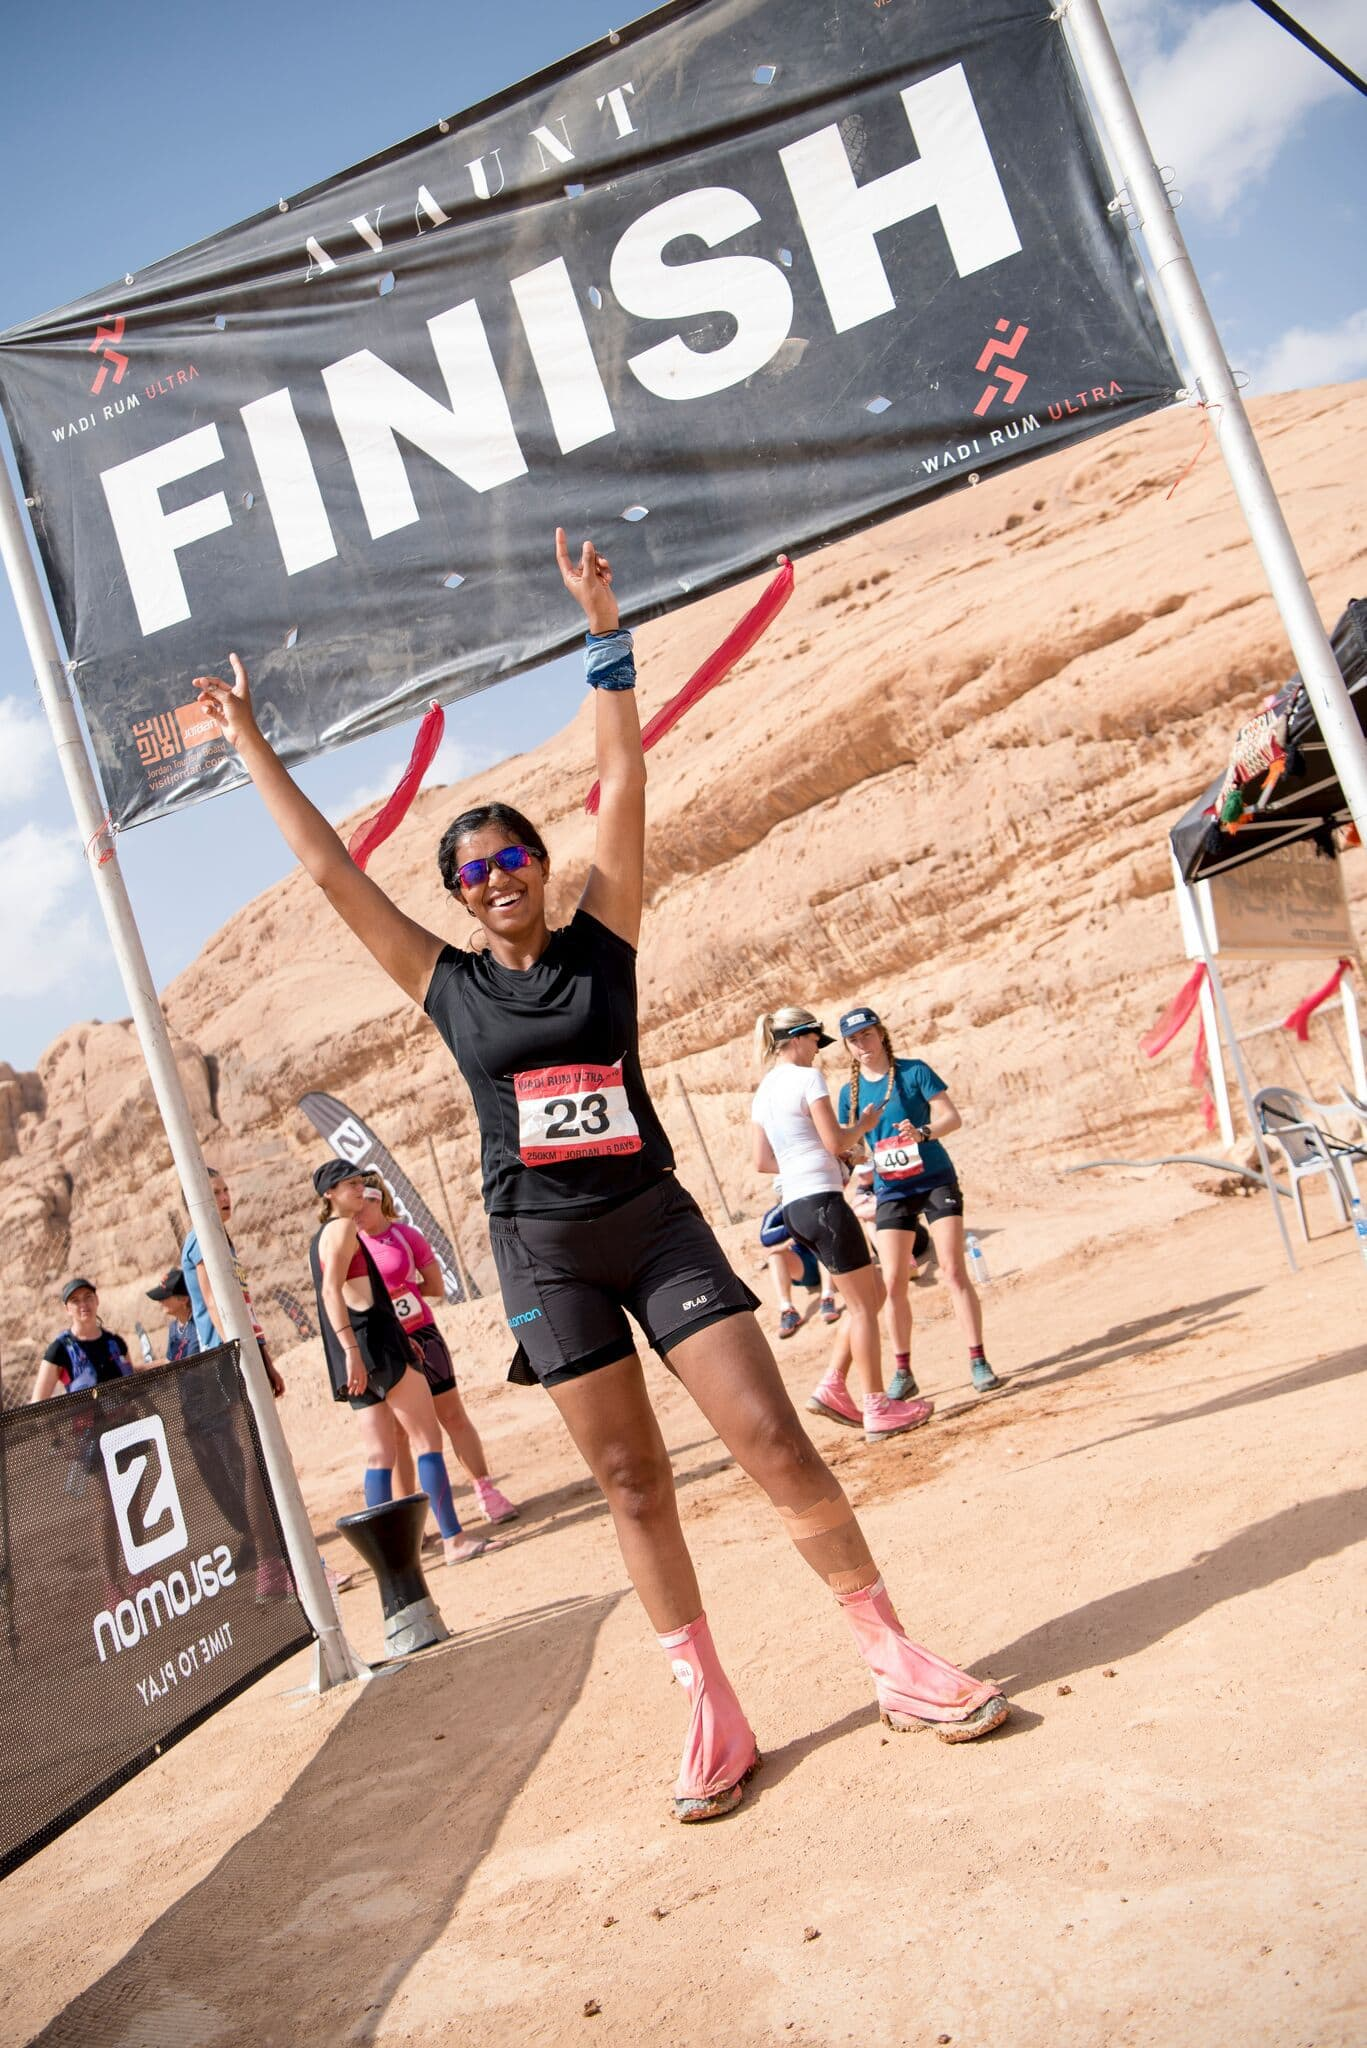 How long does it take to recover after an ultra? Ultra X